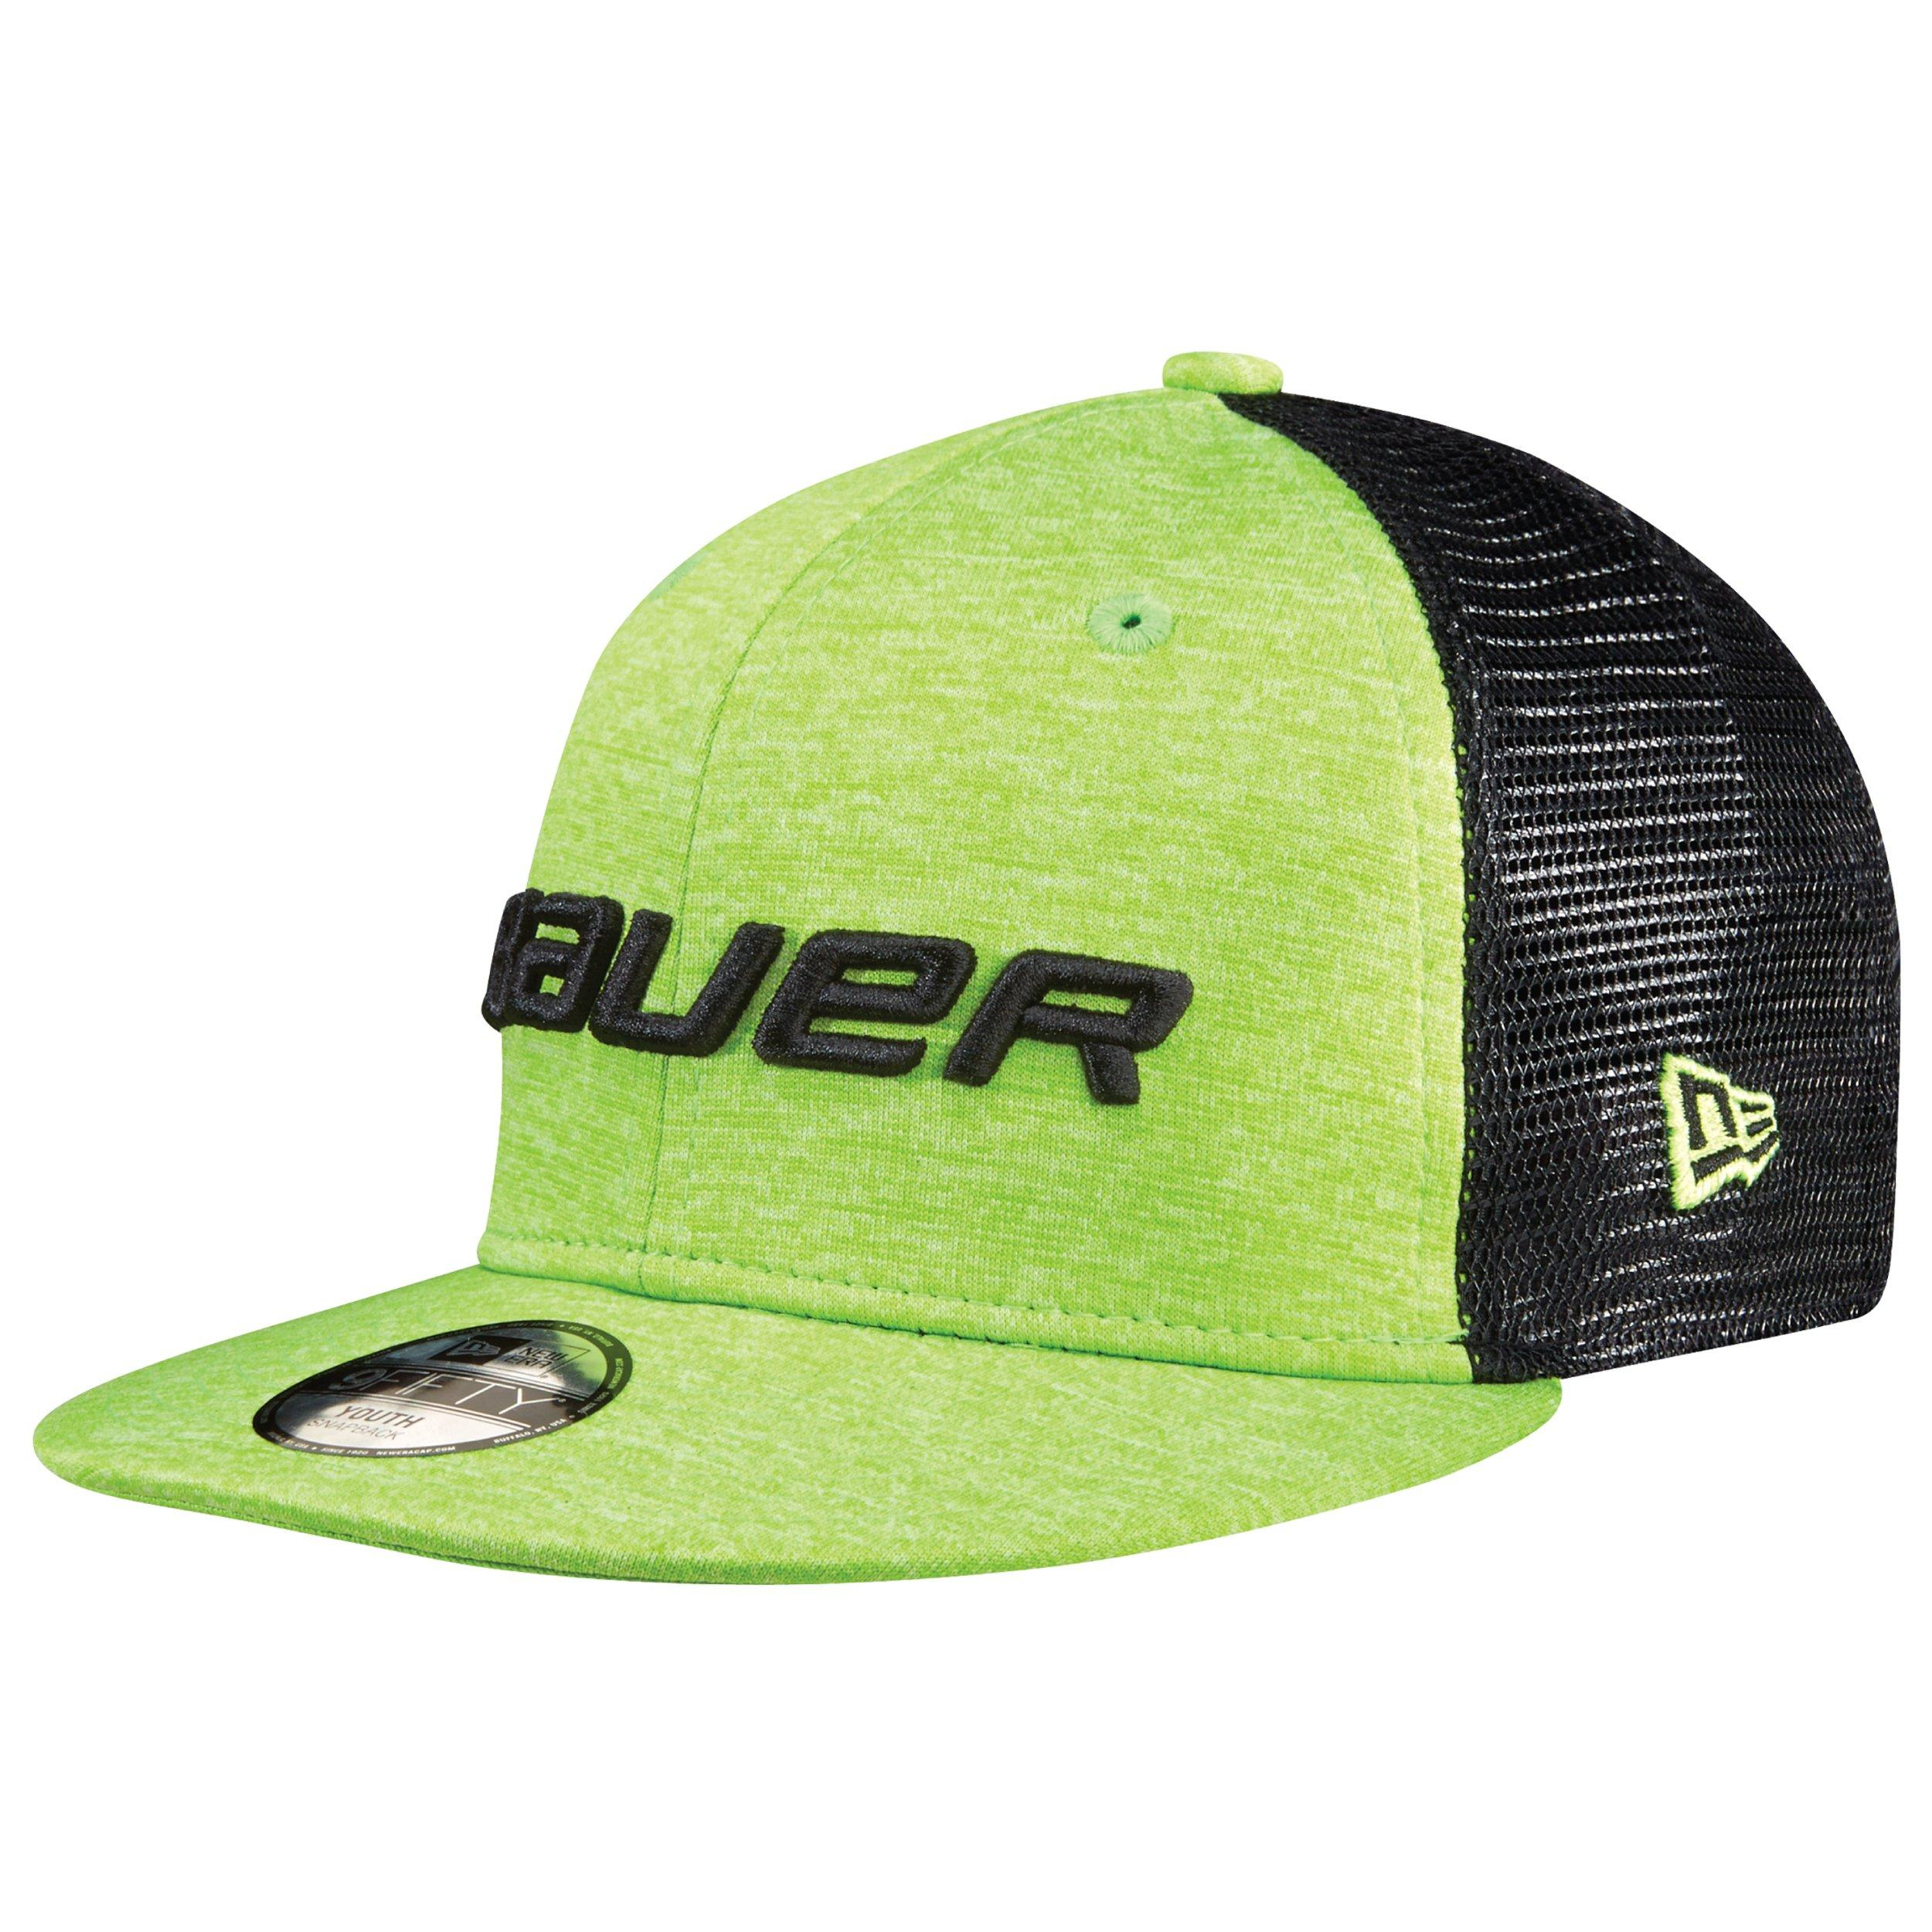 BAUER / New Era® 9FIFTY® Color Pop Adjustable Cap Youth - Lime,,Medium